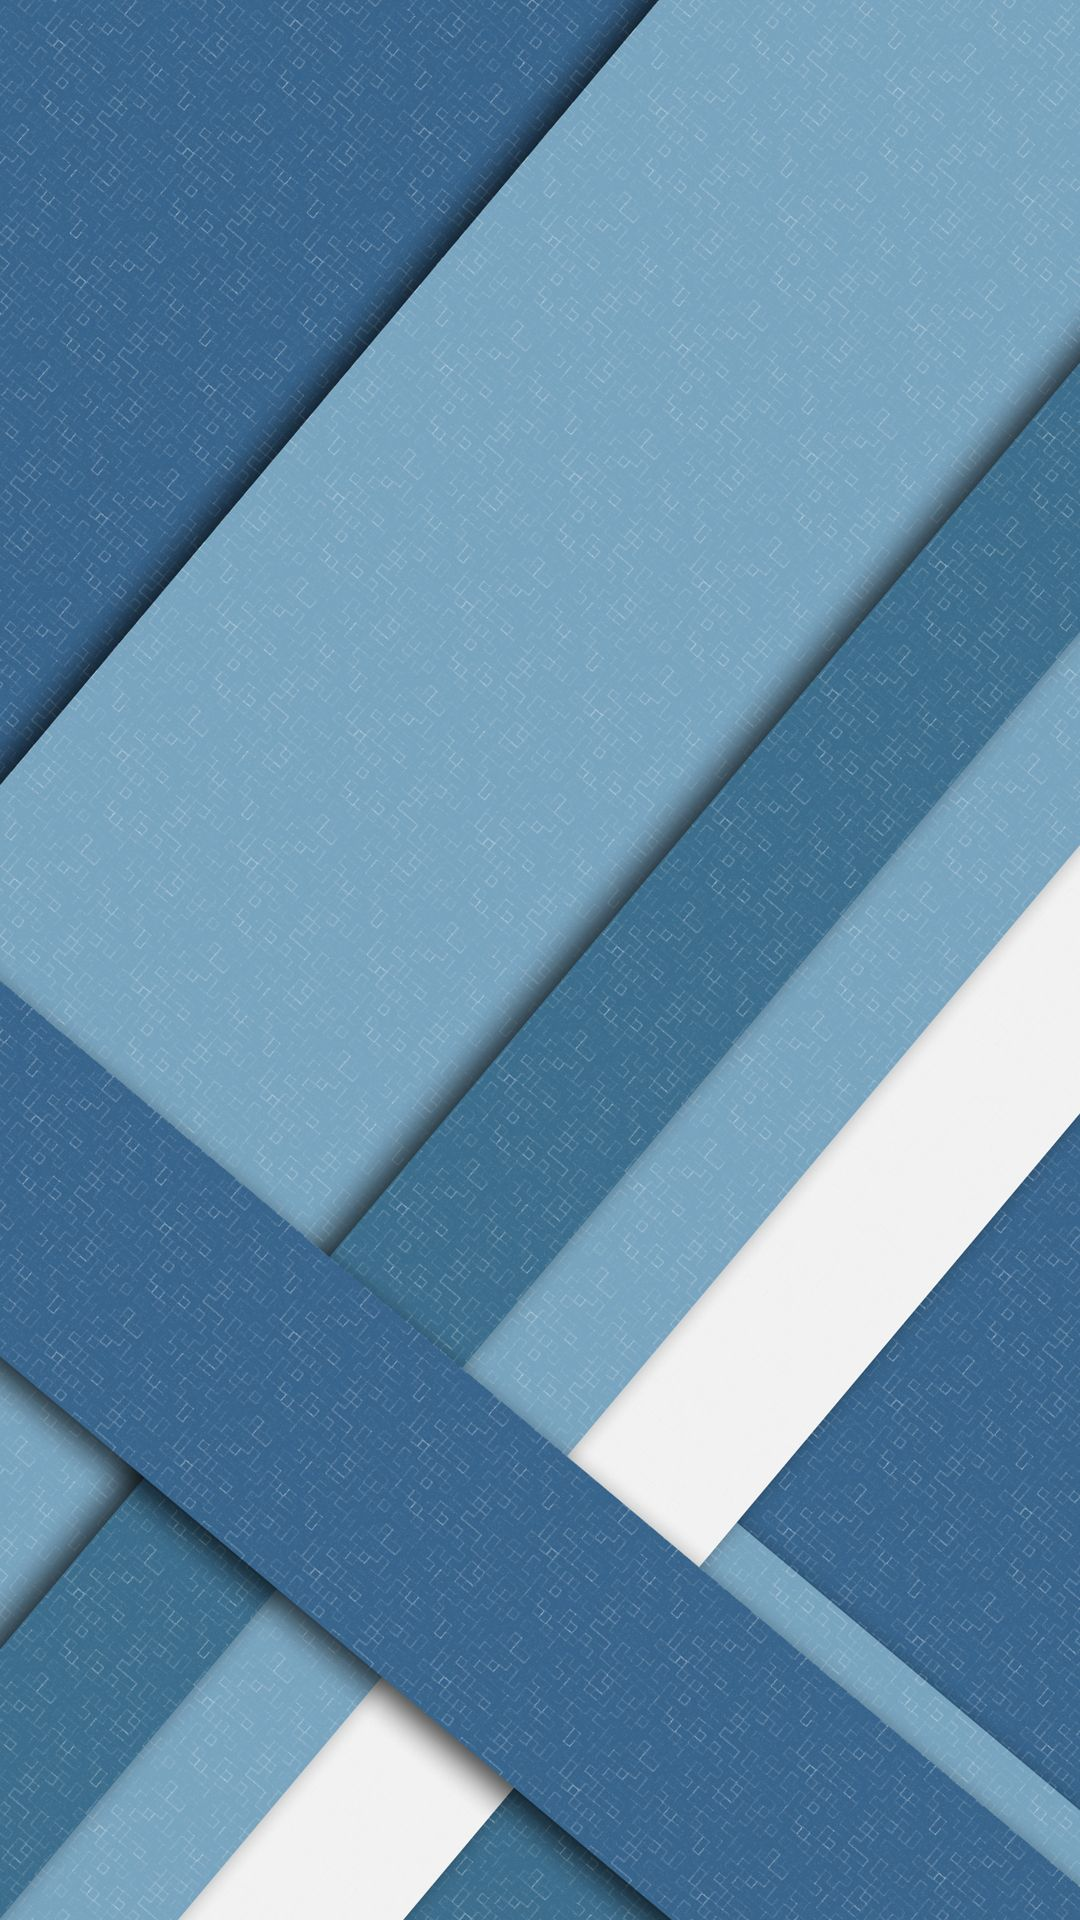 Material Design Mobile HD Wallpaper14 Vactual Papers Material